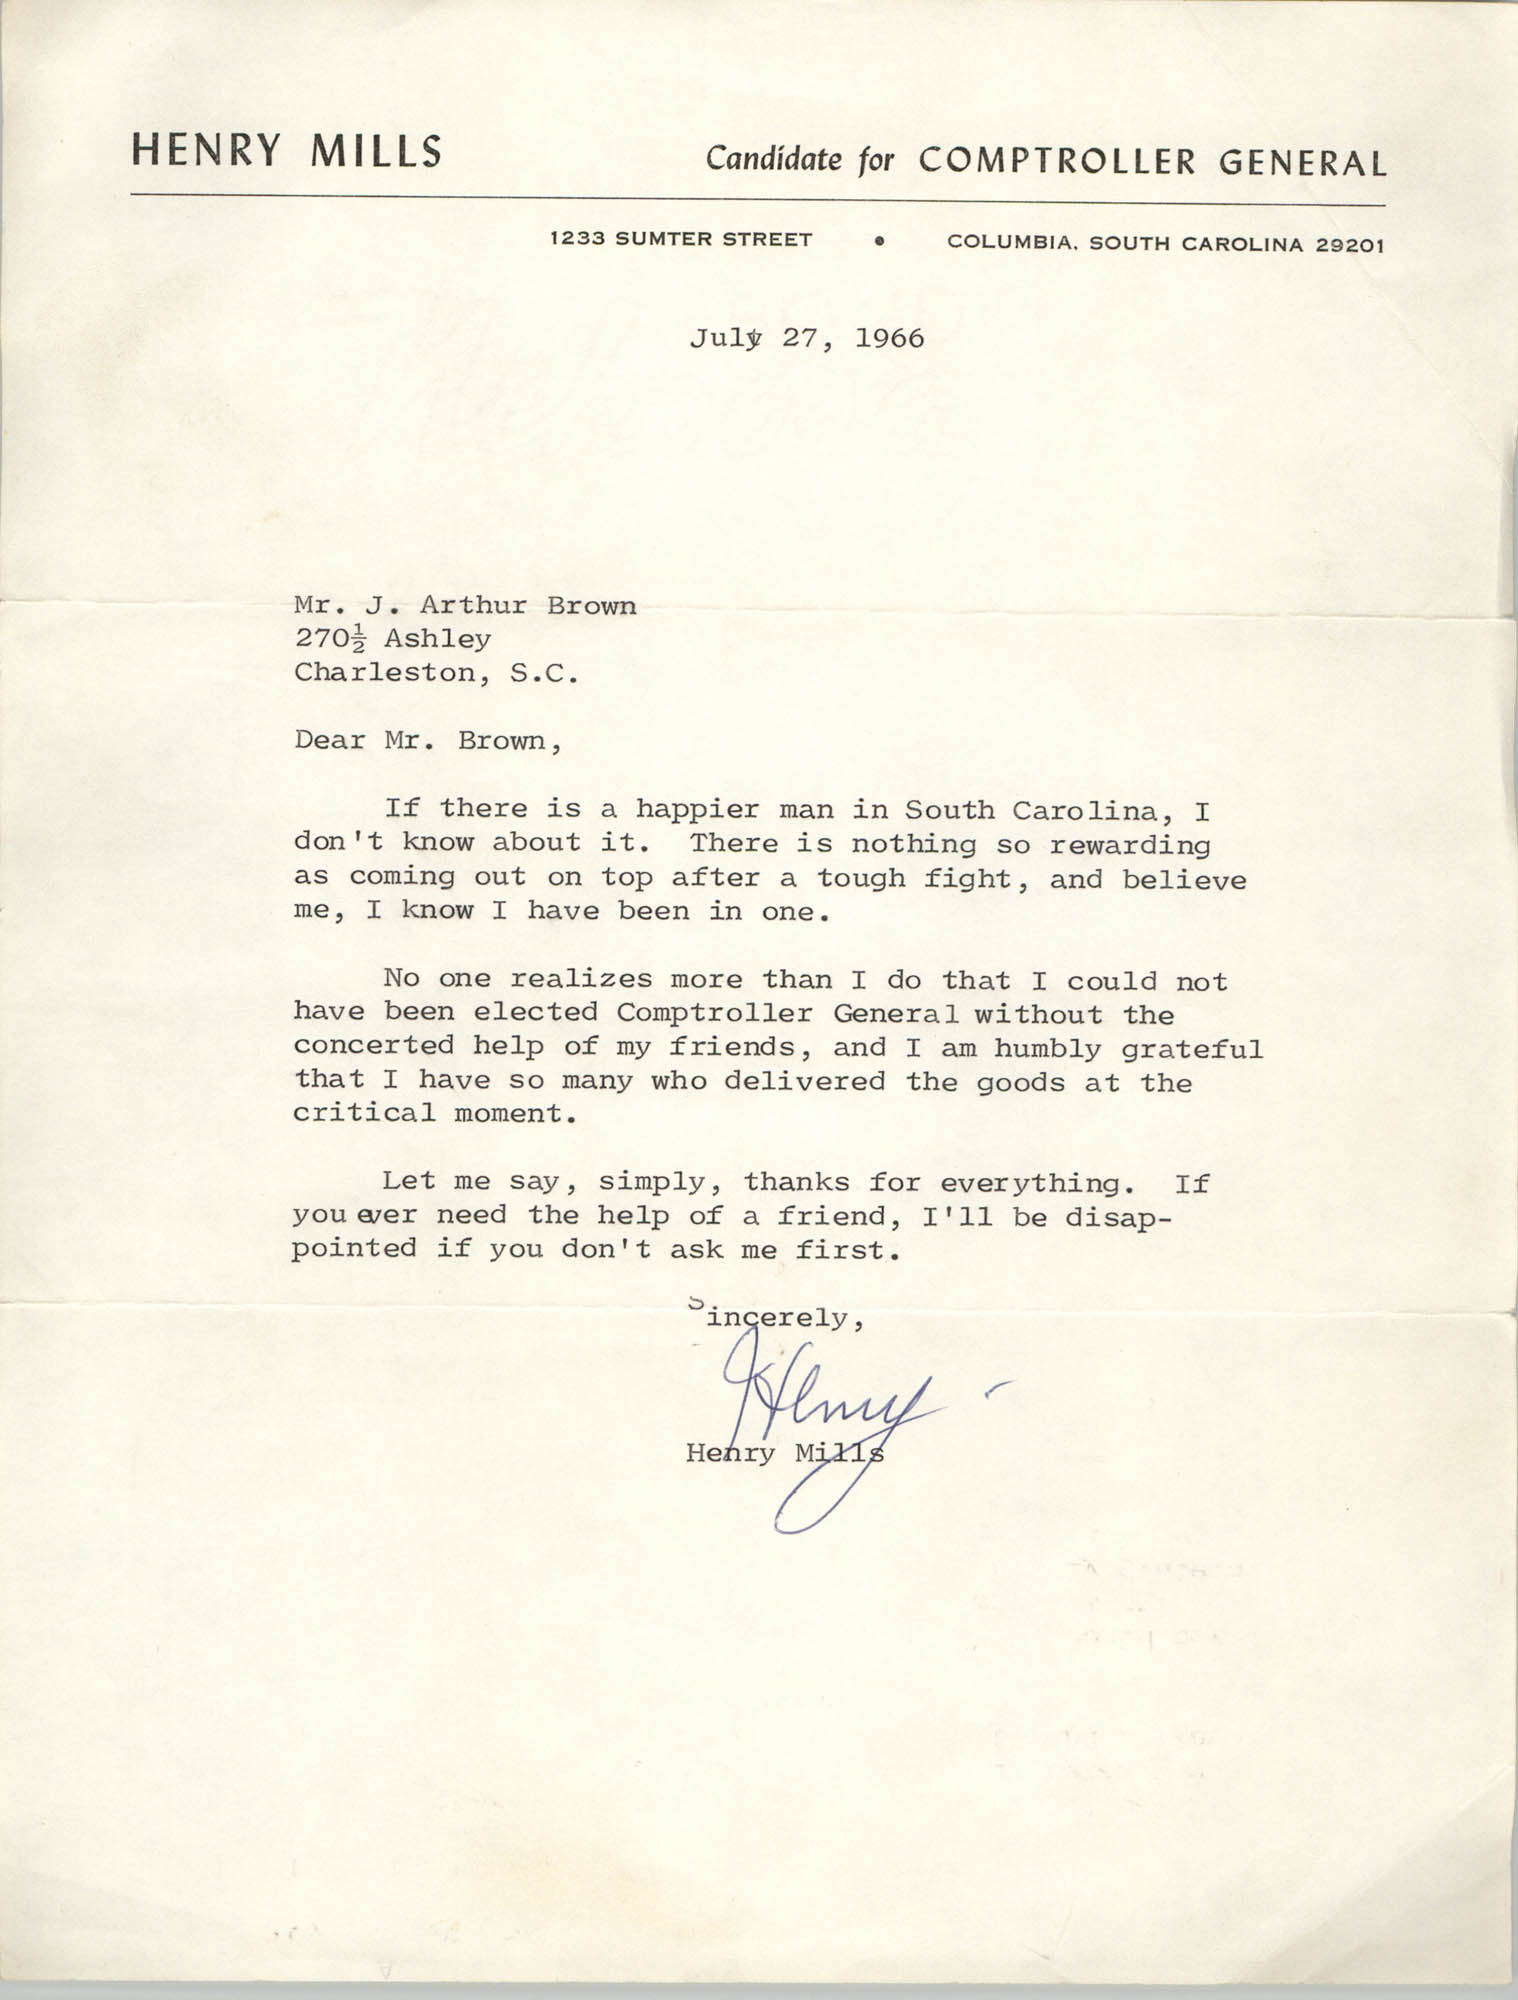 Letter from Henry Mills to J. Arthur Brown, June 27, 1966